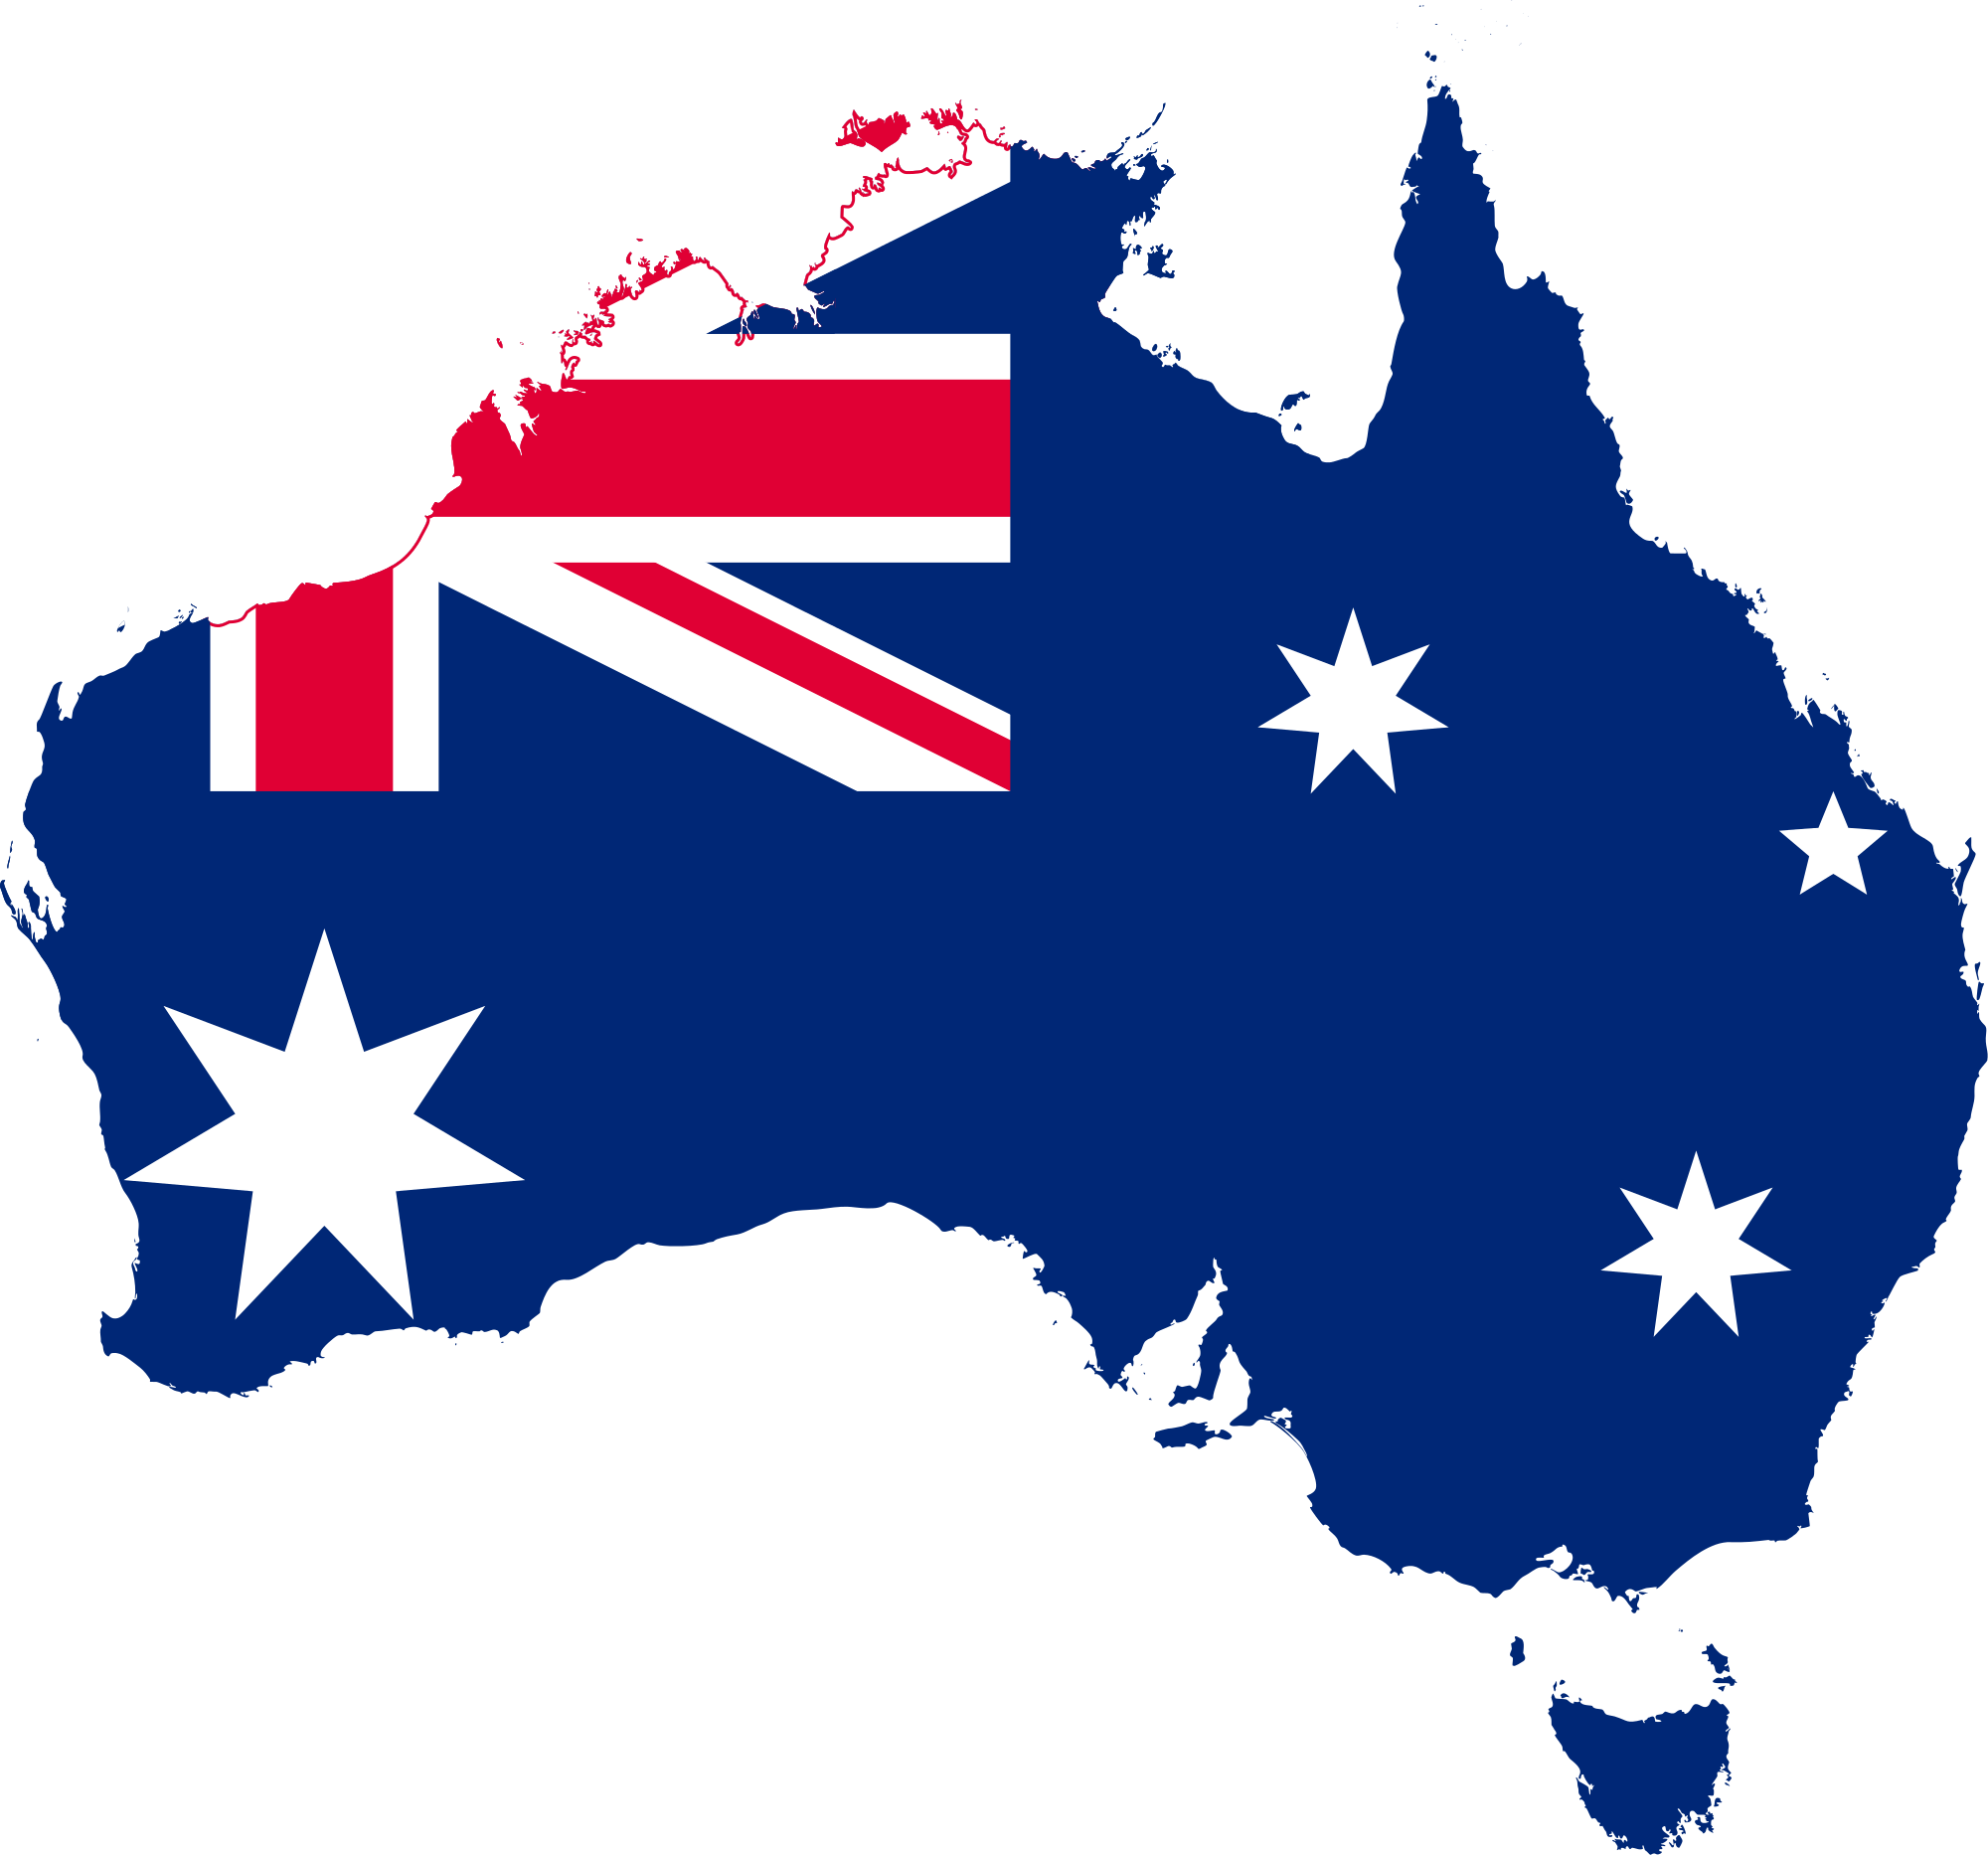 Australia flag transparent clipart svg library library Australia Flag PNG Transparent Images Group with 55+ items svg library library